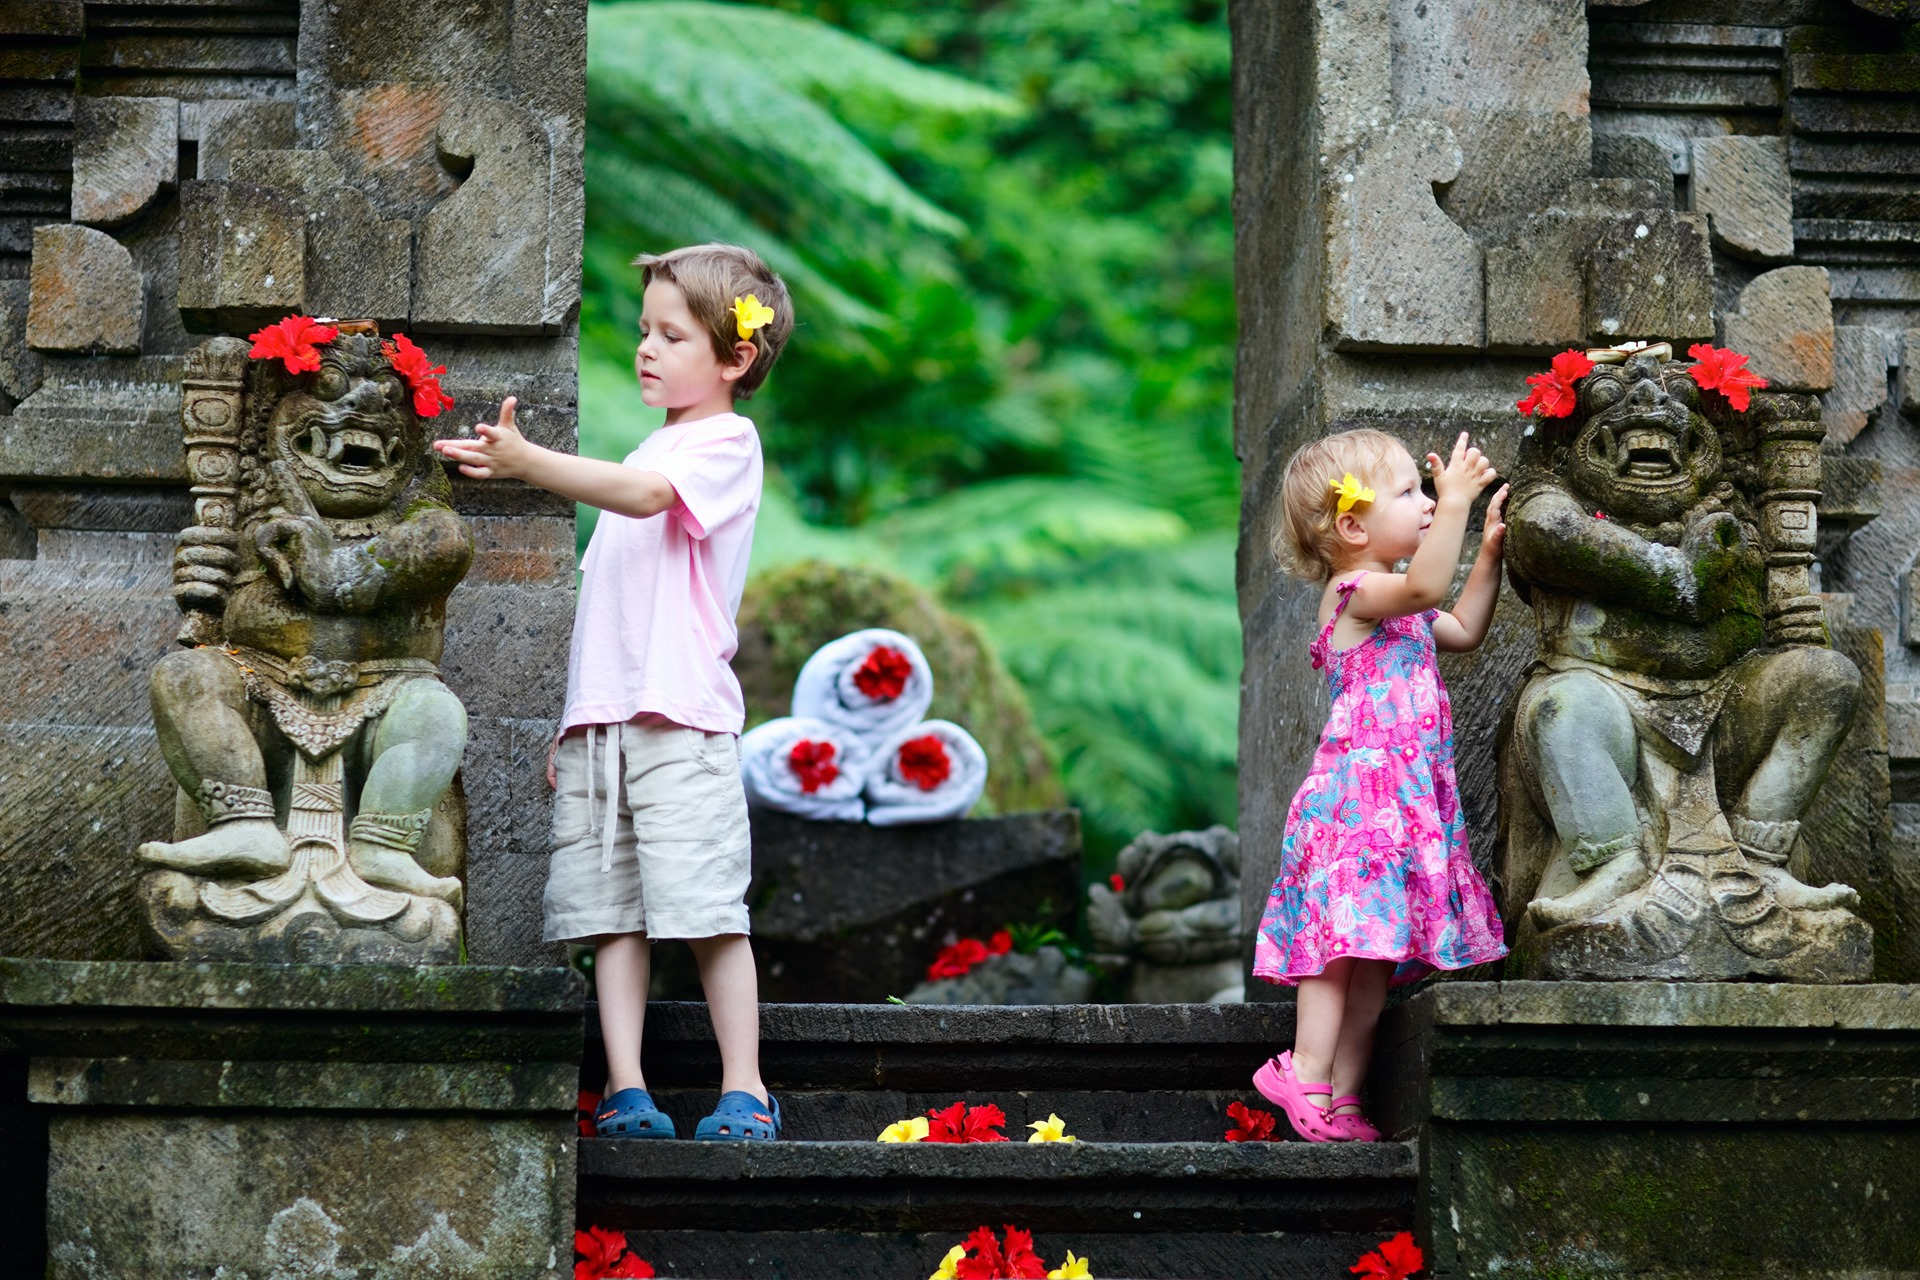 Best things to do for kids in Bali